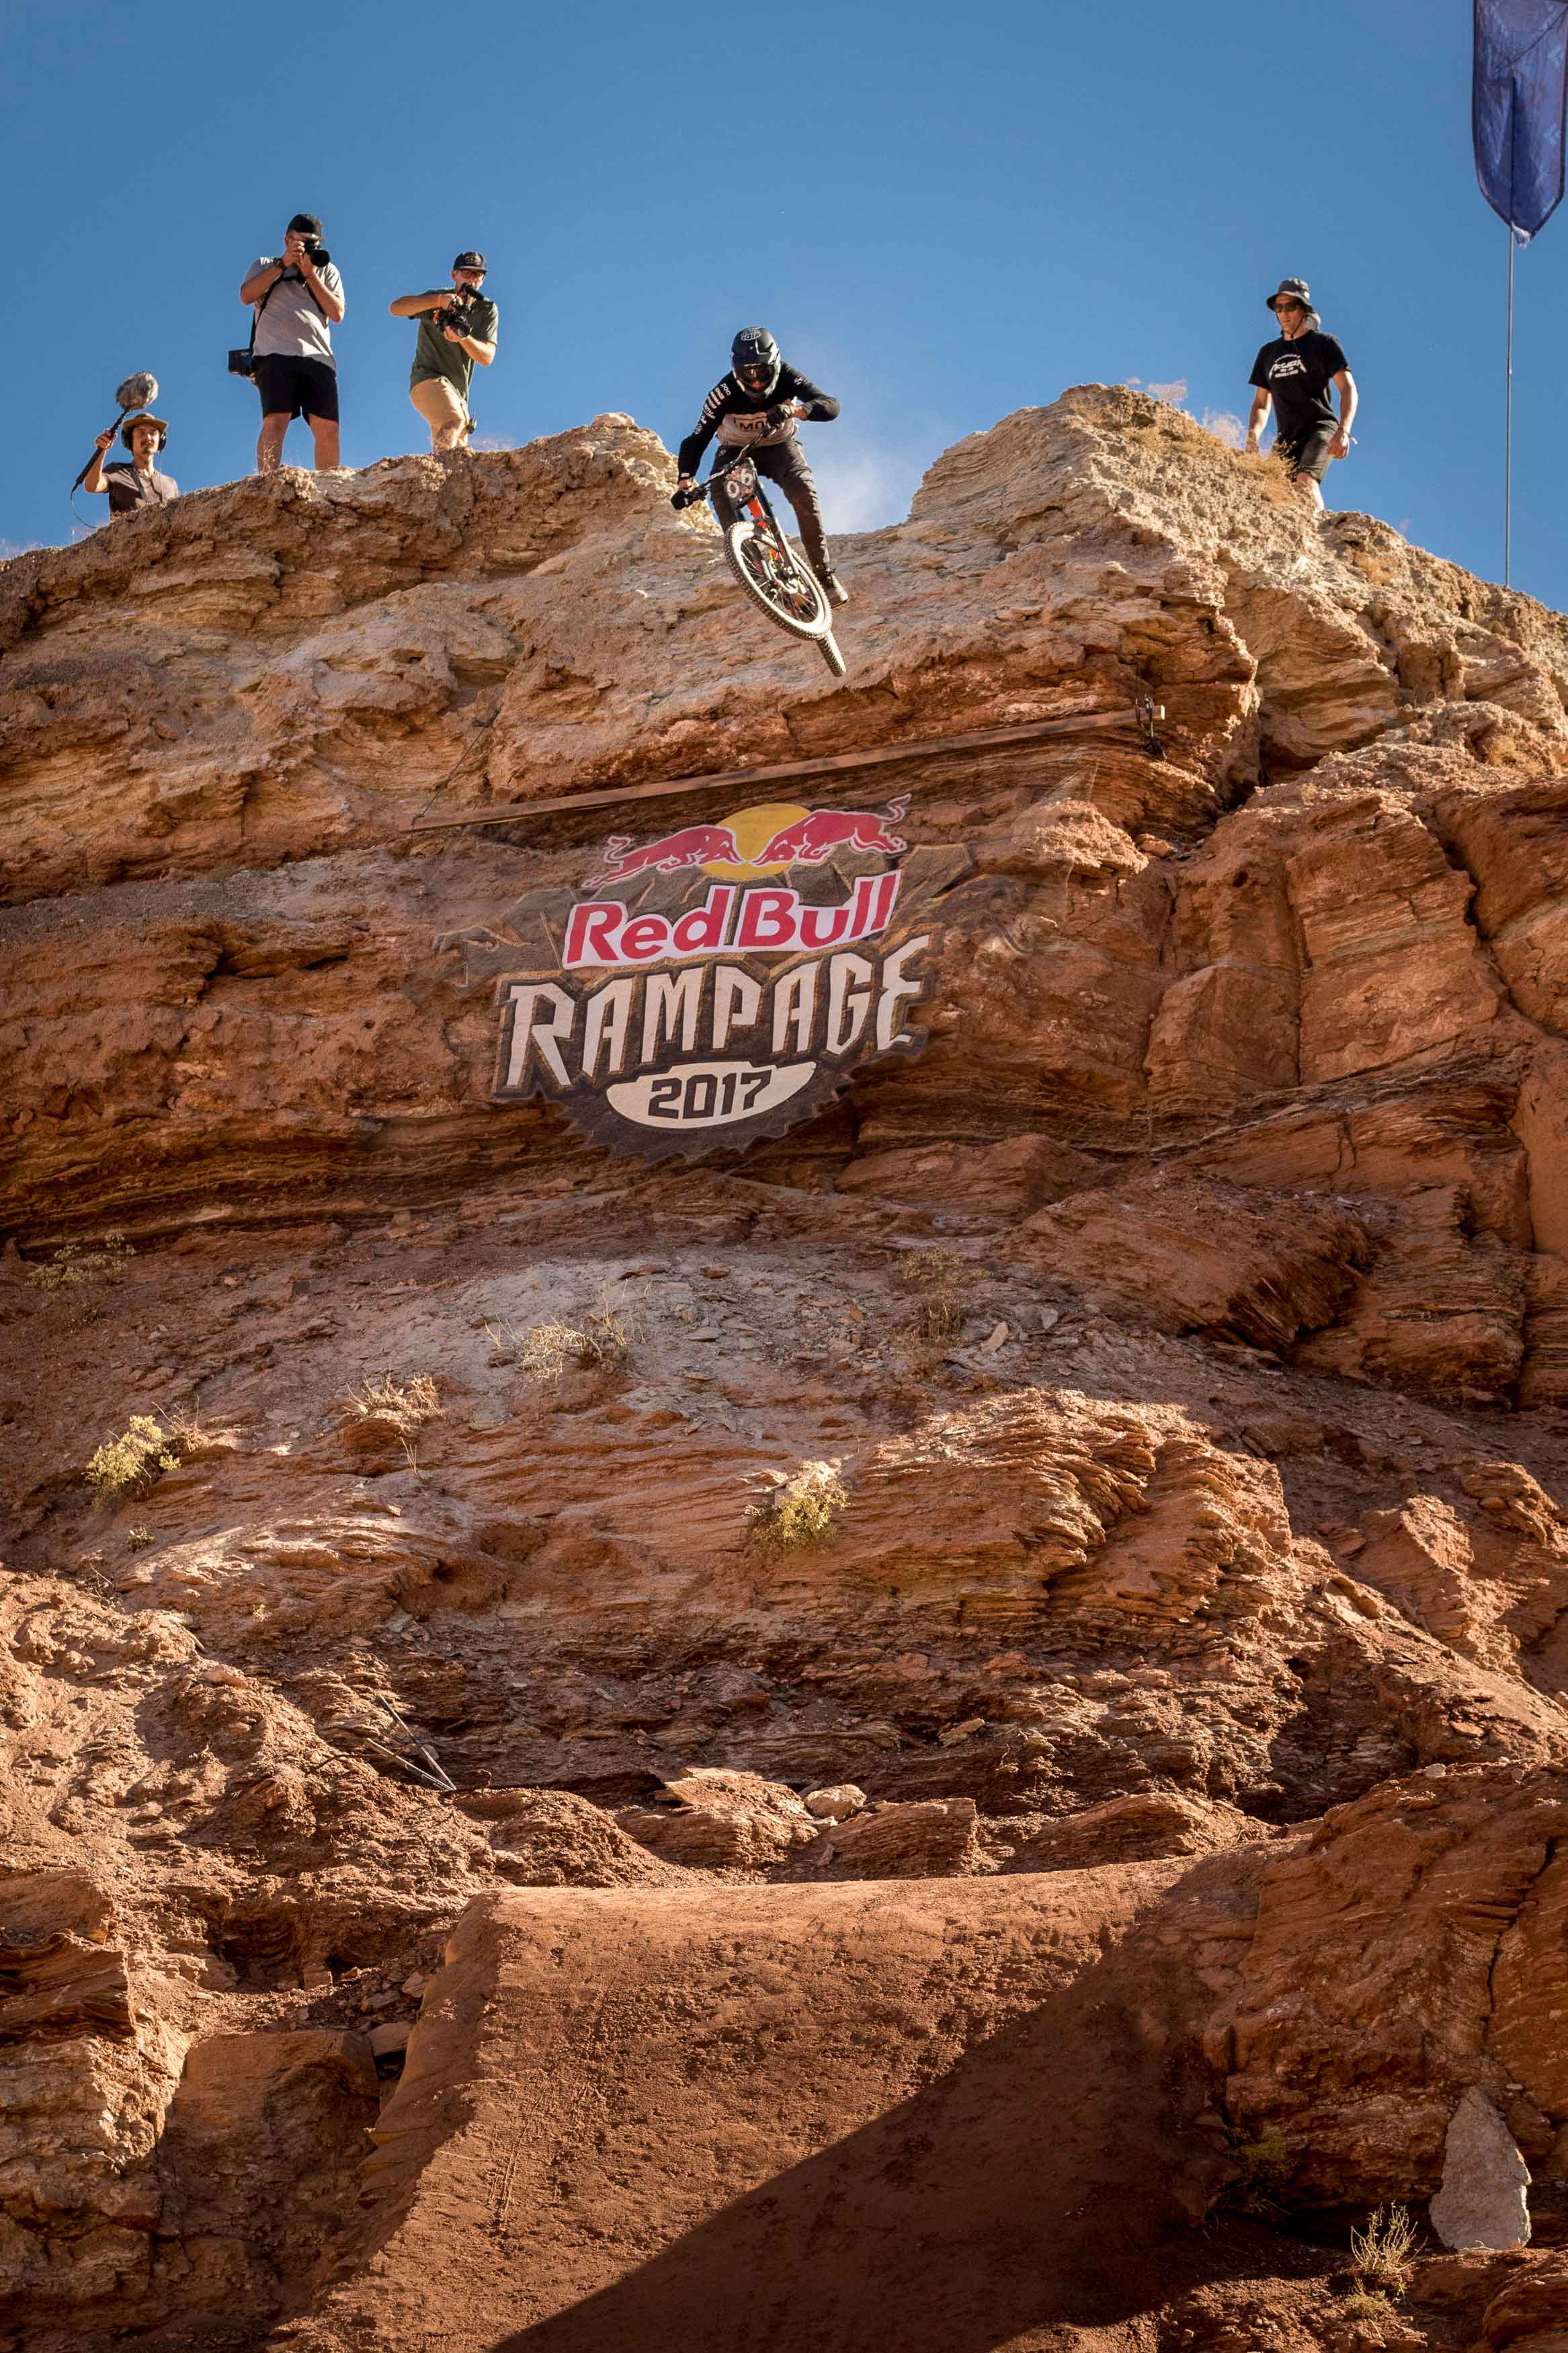 Rampage 2017 Practice